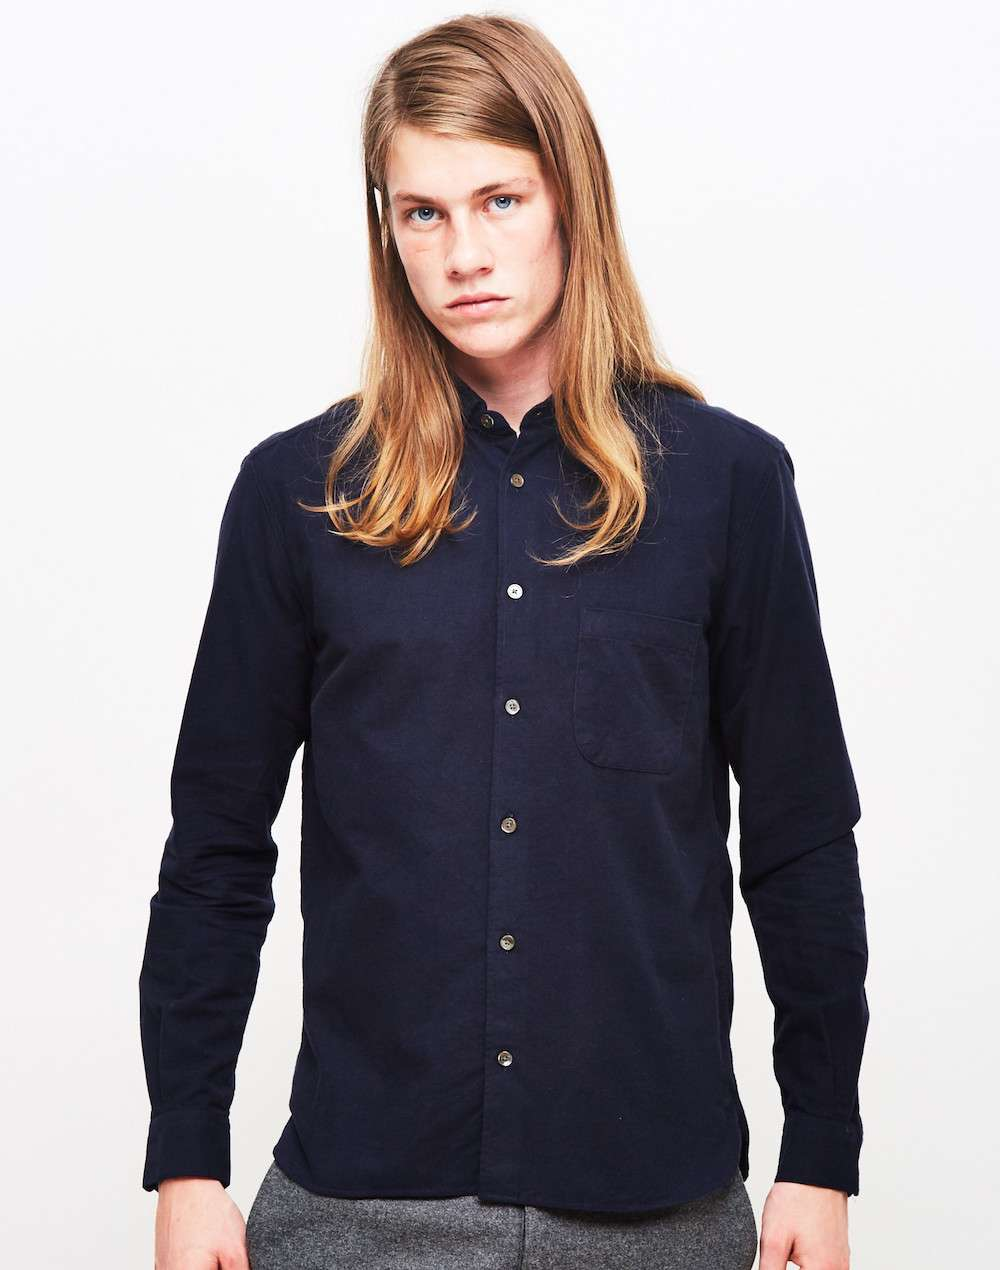 YMC Navy Shirt men